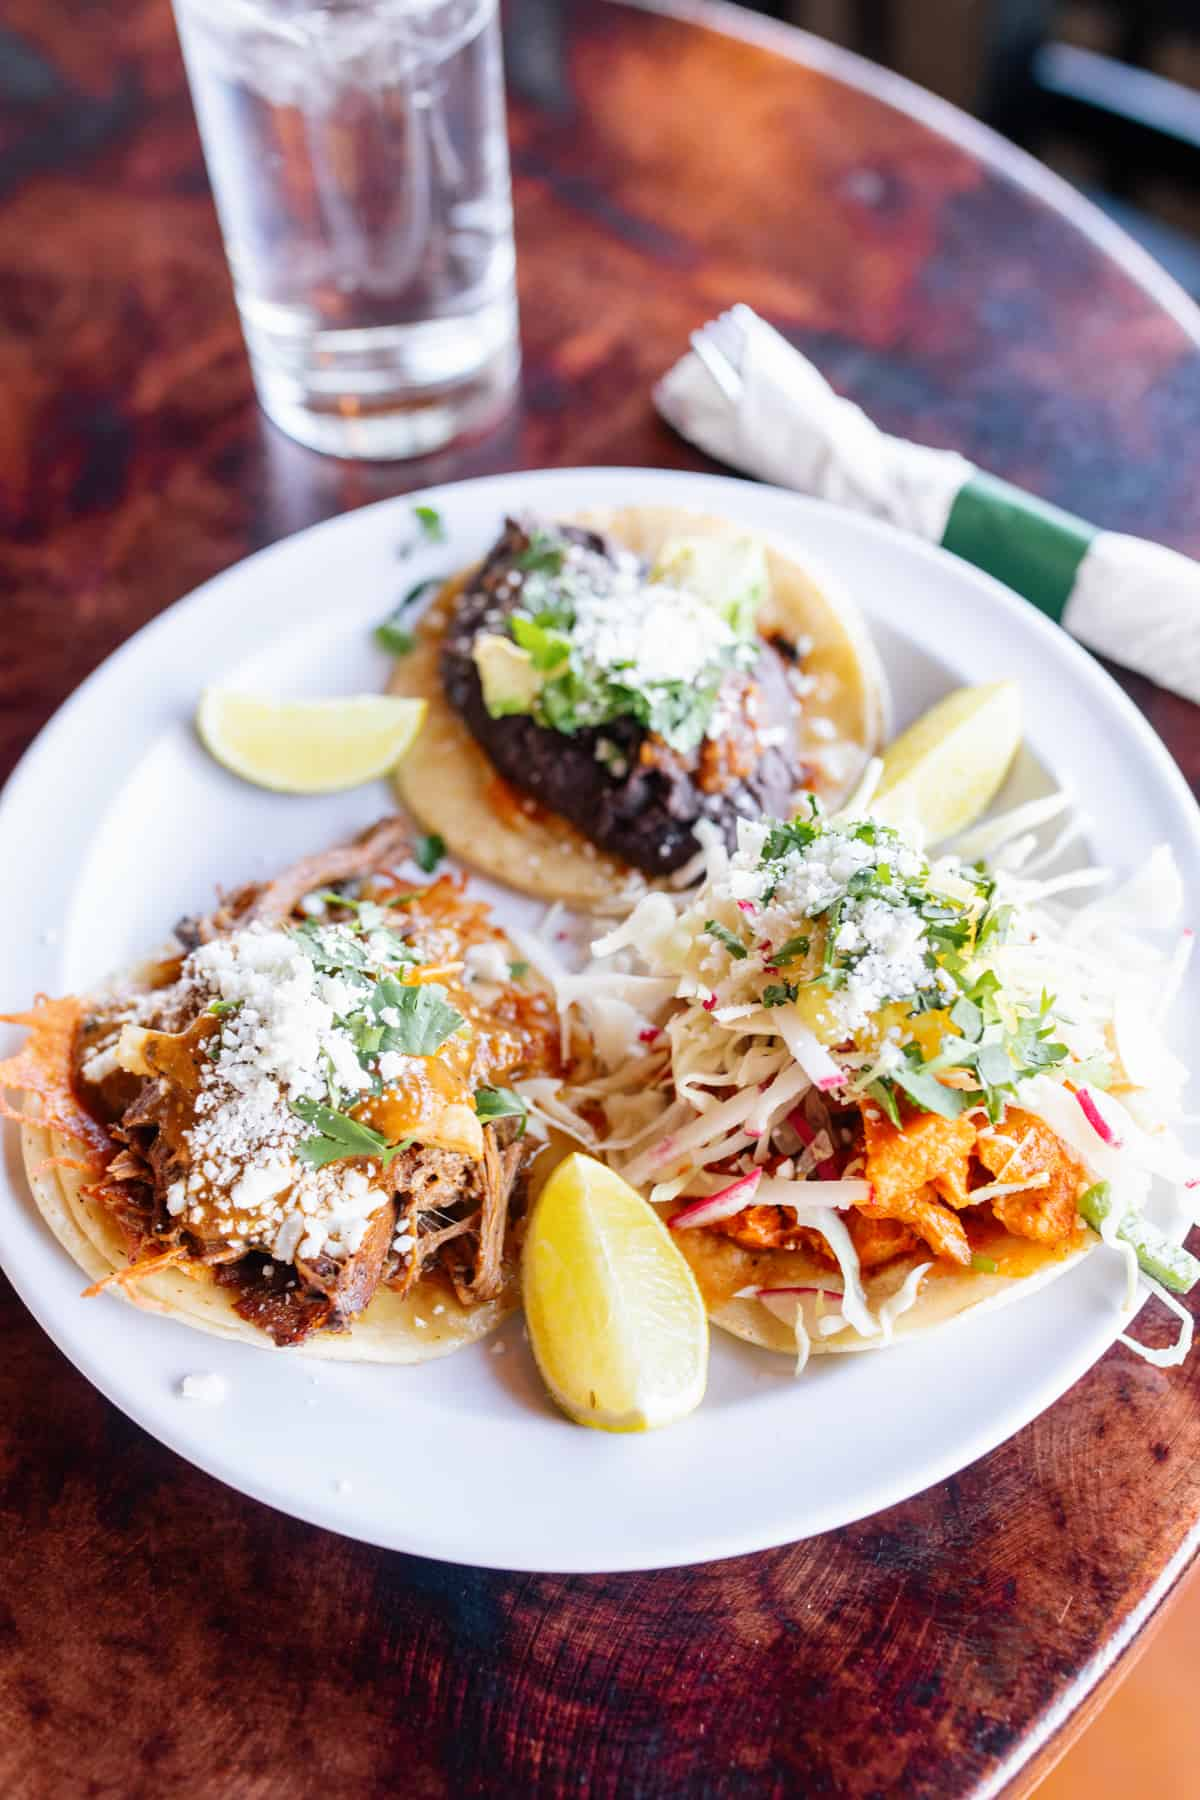 From hole-in-the-wall to upscale and inventive, we've rounded up the taco shops of your dreams in our guide to the 10 Best Tacos in Denver!